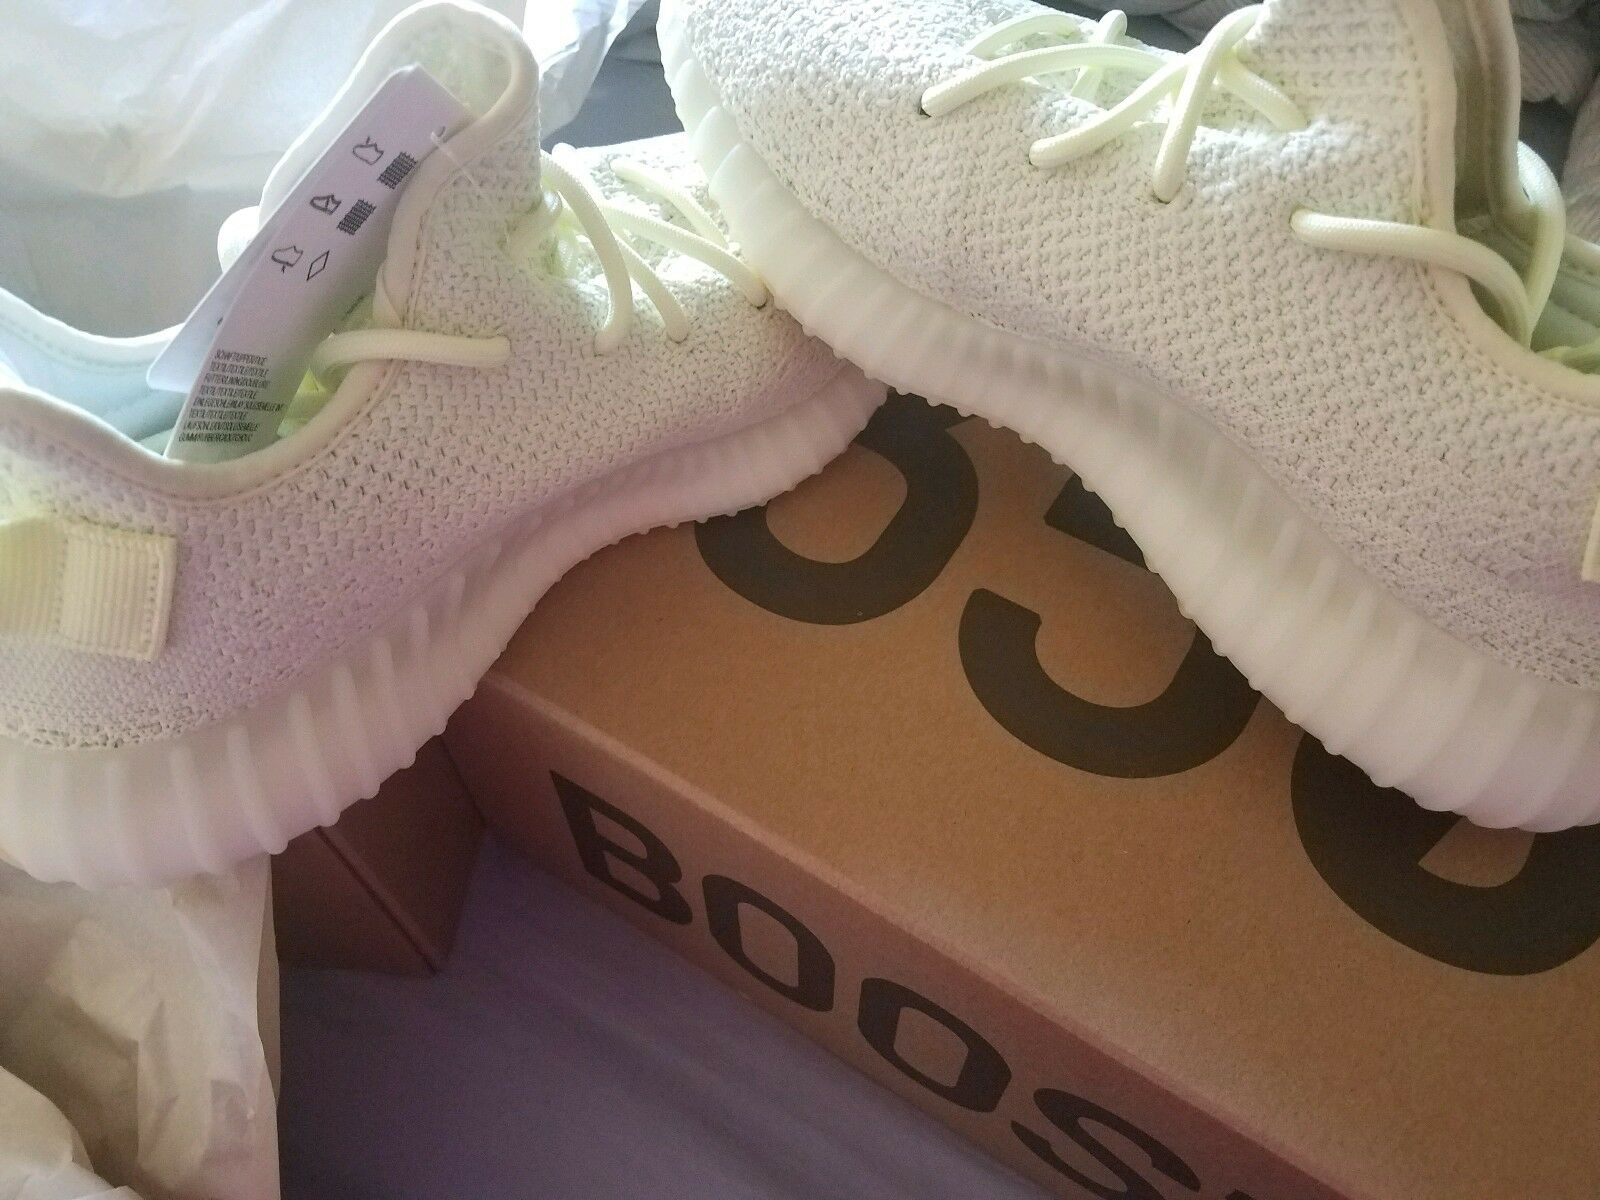 NEW ADIDAS YEEZY BOOST 350 V2 NEW BUTTER SIZE 6 BRAND NEW V2 bf4d1b